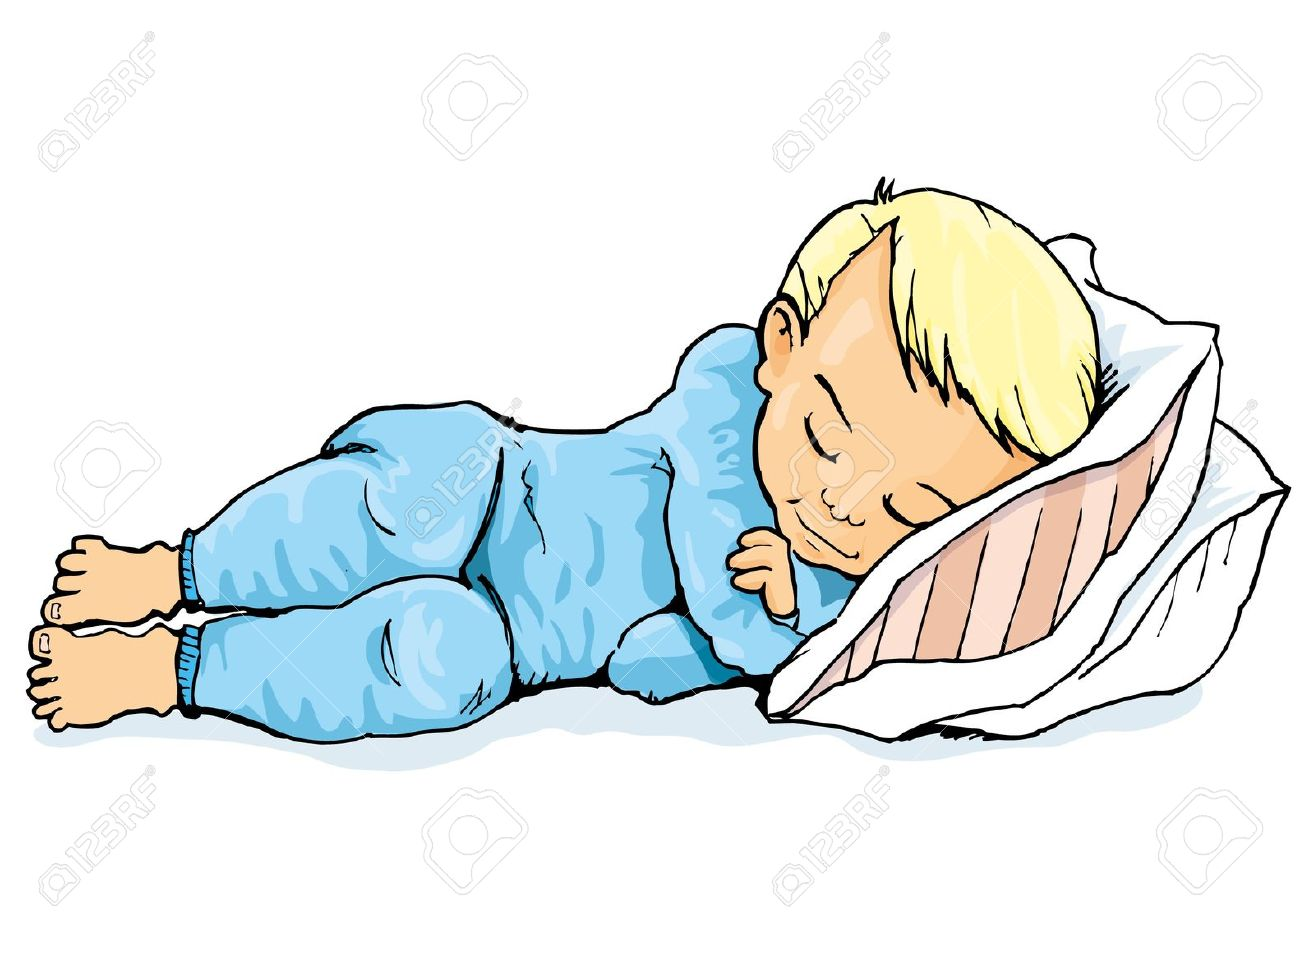 Sleeping clipart. Boy